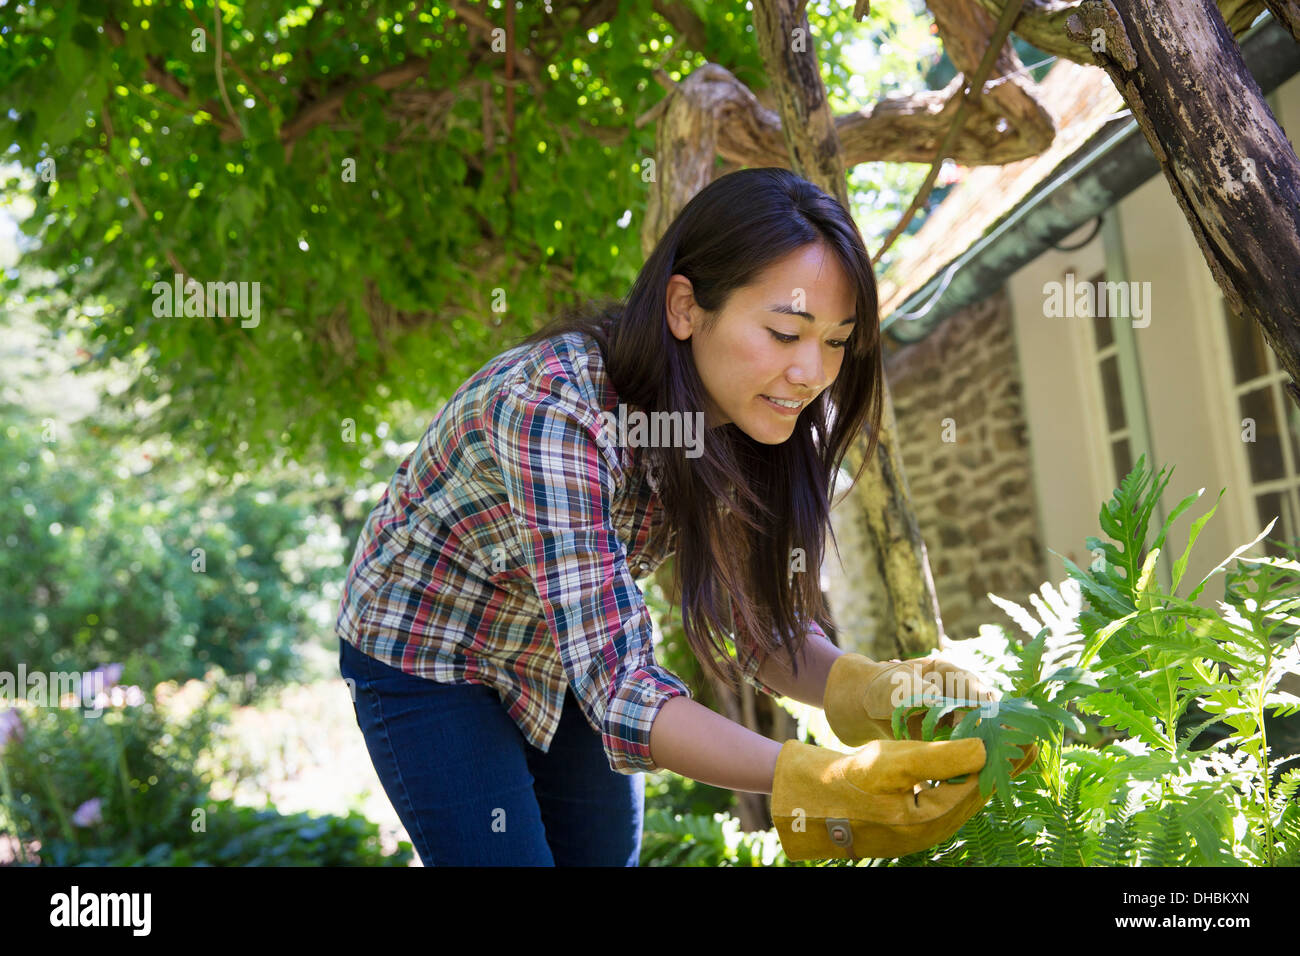 A farm growing and selling organic vegetables and fruit. A young woman working. - Stock Image